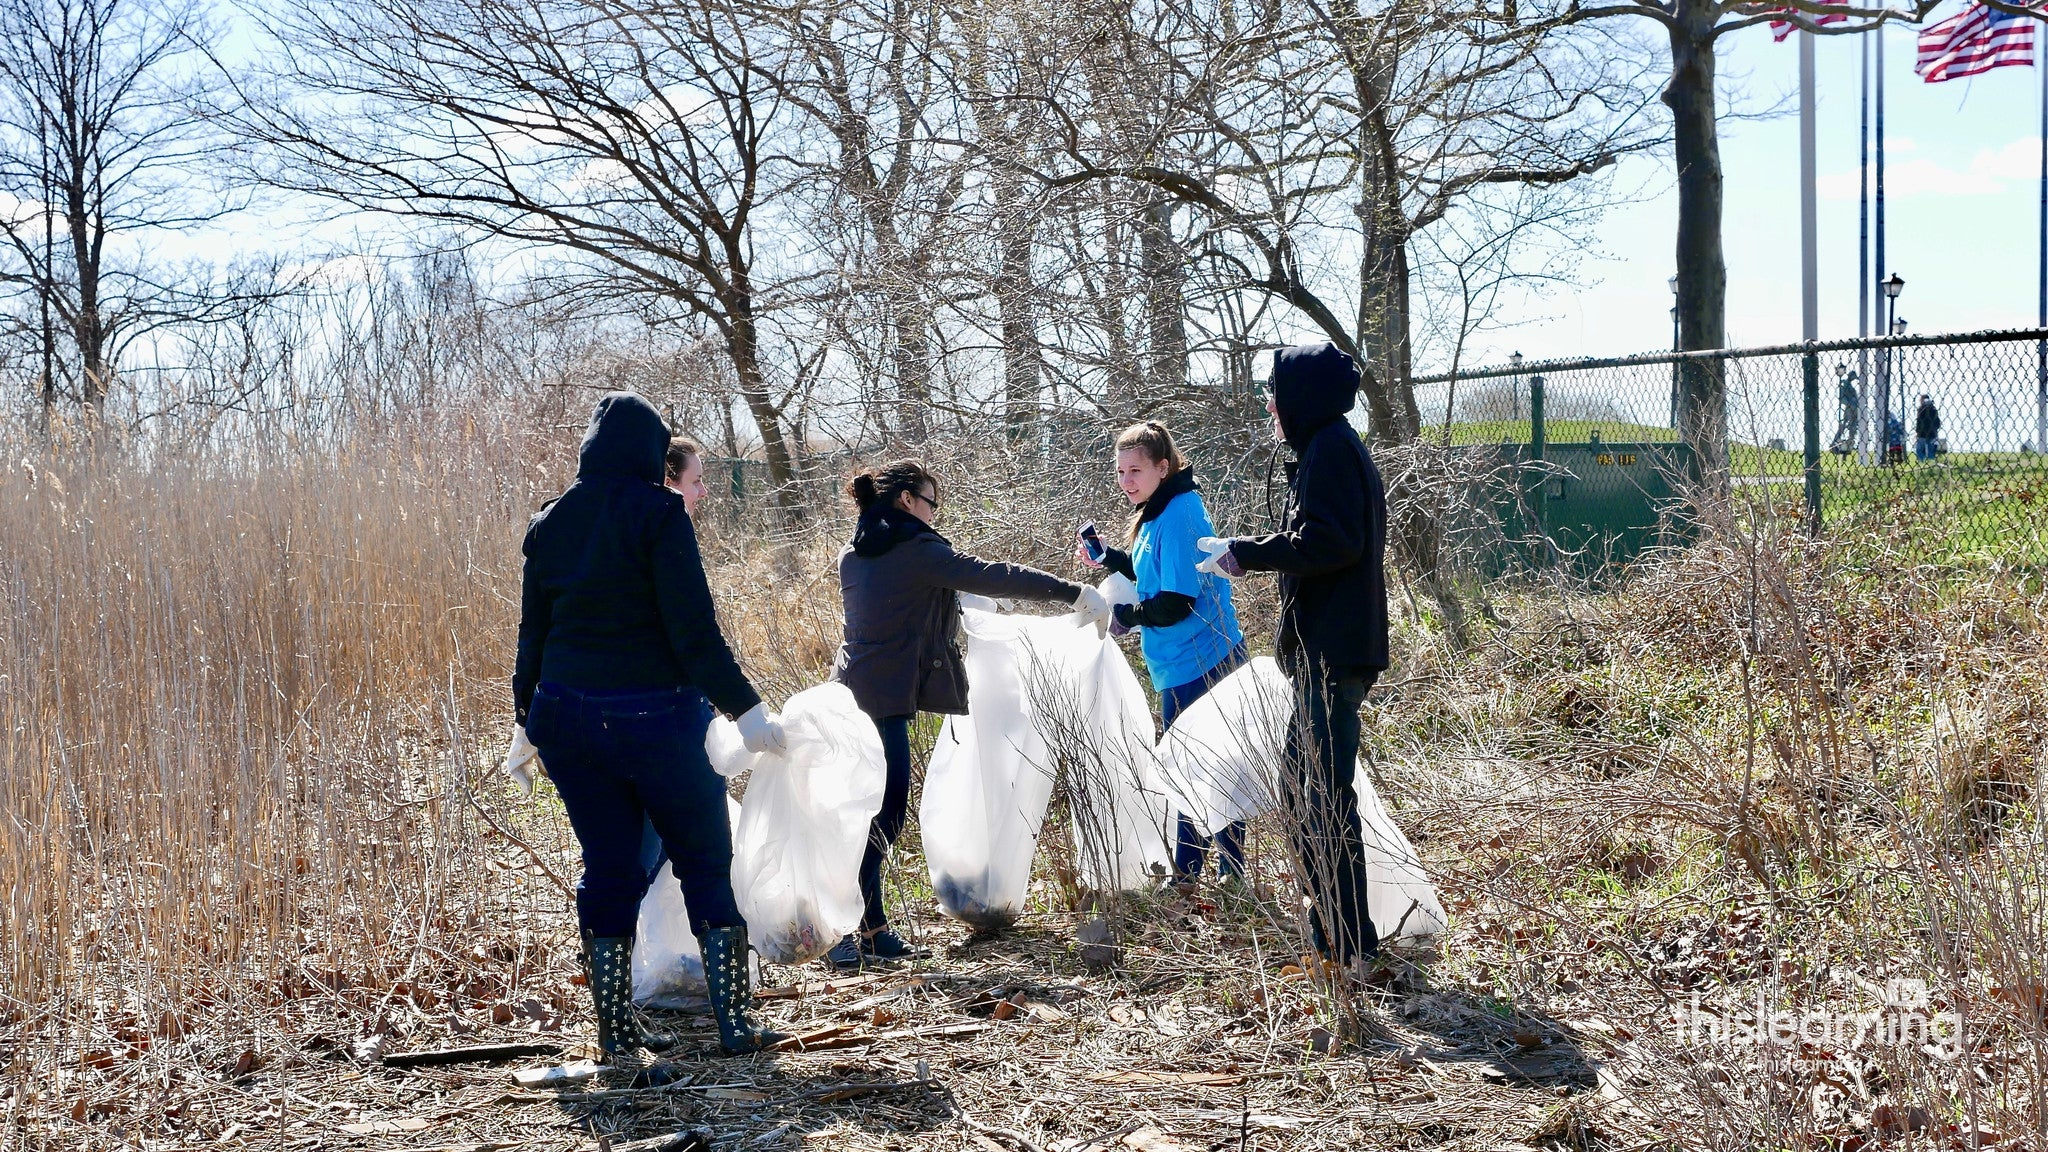 Salt Marsh Cleanup at Liberty State Park